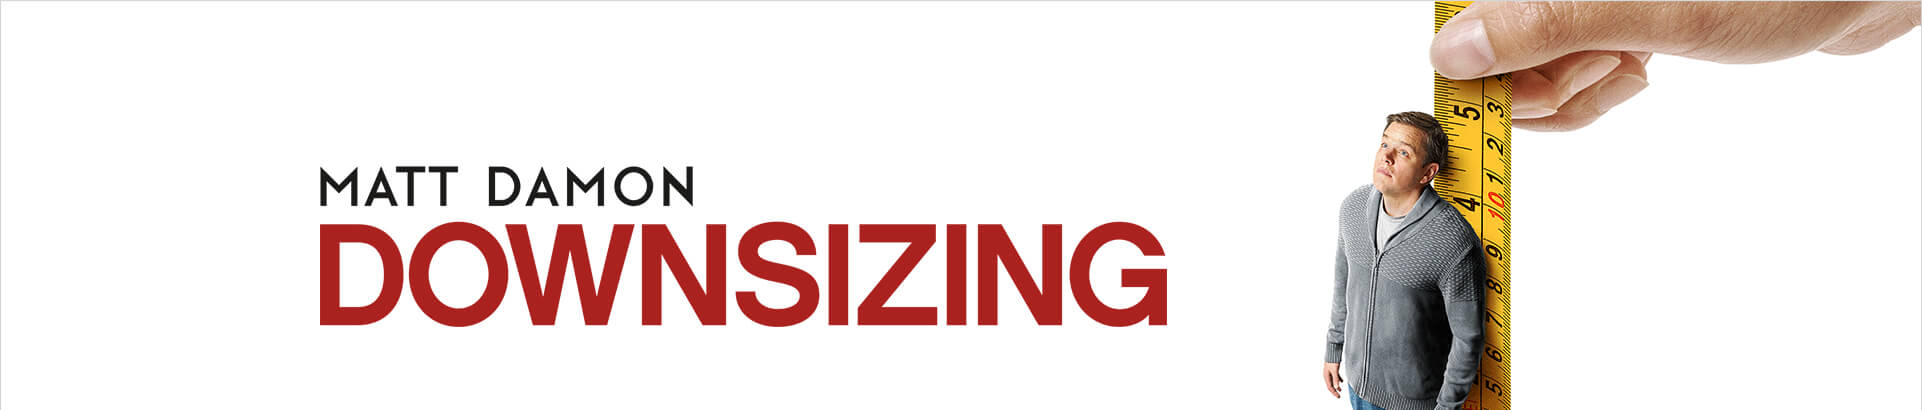 downsizing_main_banner